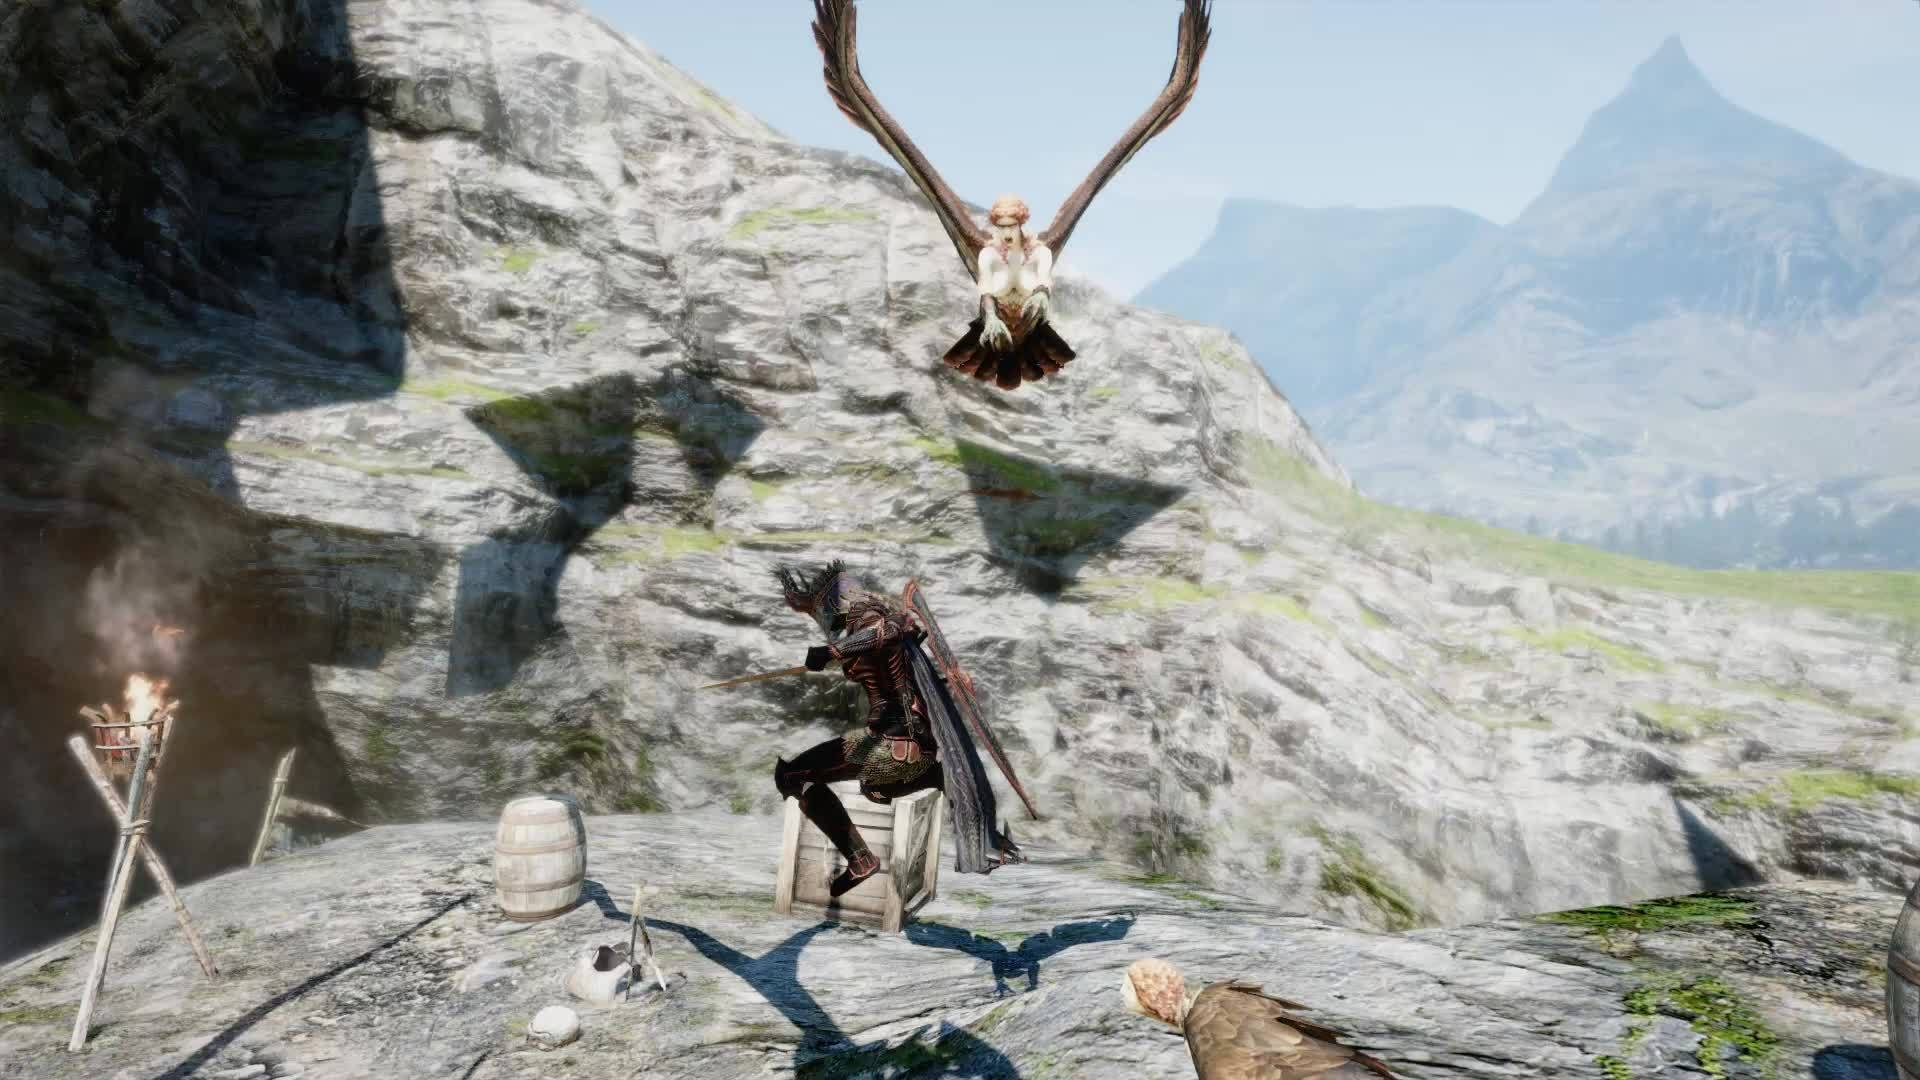 DragonsDogma, dragonsdogma, Review: Dragon's Dogma: Dark Arisen 8/10 (PS4 Pro, confirmed to be 30fps, even on Pro) (reddit) GIFs